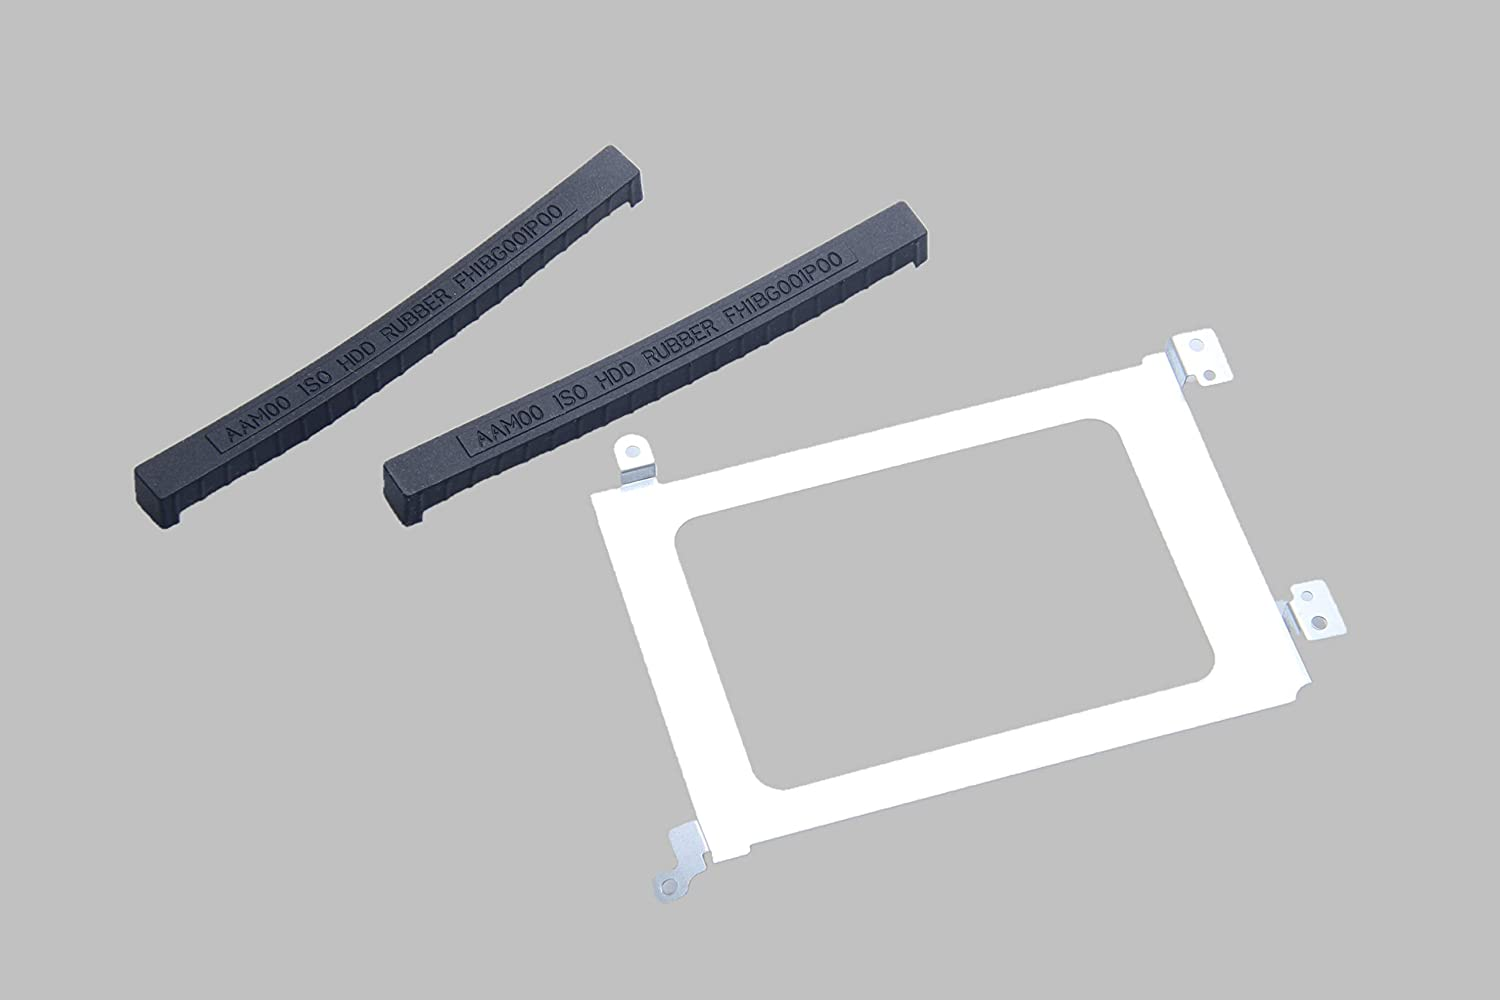 Toughstone Replacement New Hard Drive HDD Caddy XPS 15 9550 9560 Precision M5510 M5520 + Rubber Rails for Dell